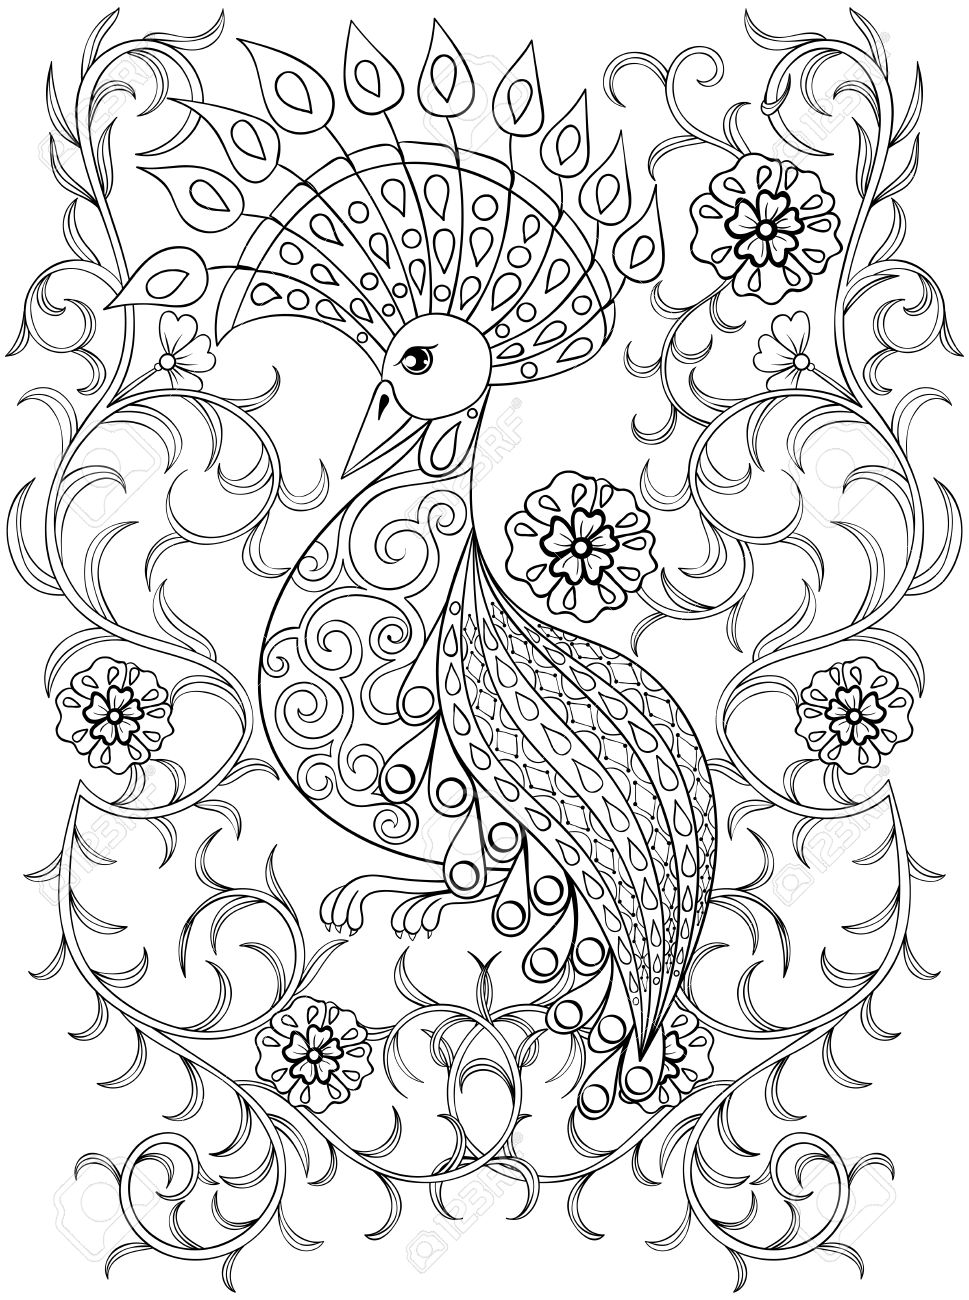 Dibujo Para Colorear Con El Pájaro En Flores, Aves Illustartion ...